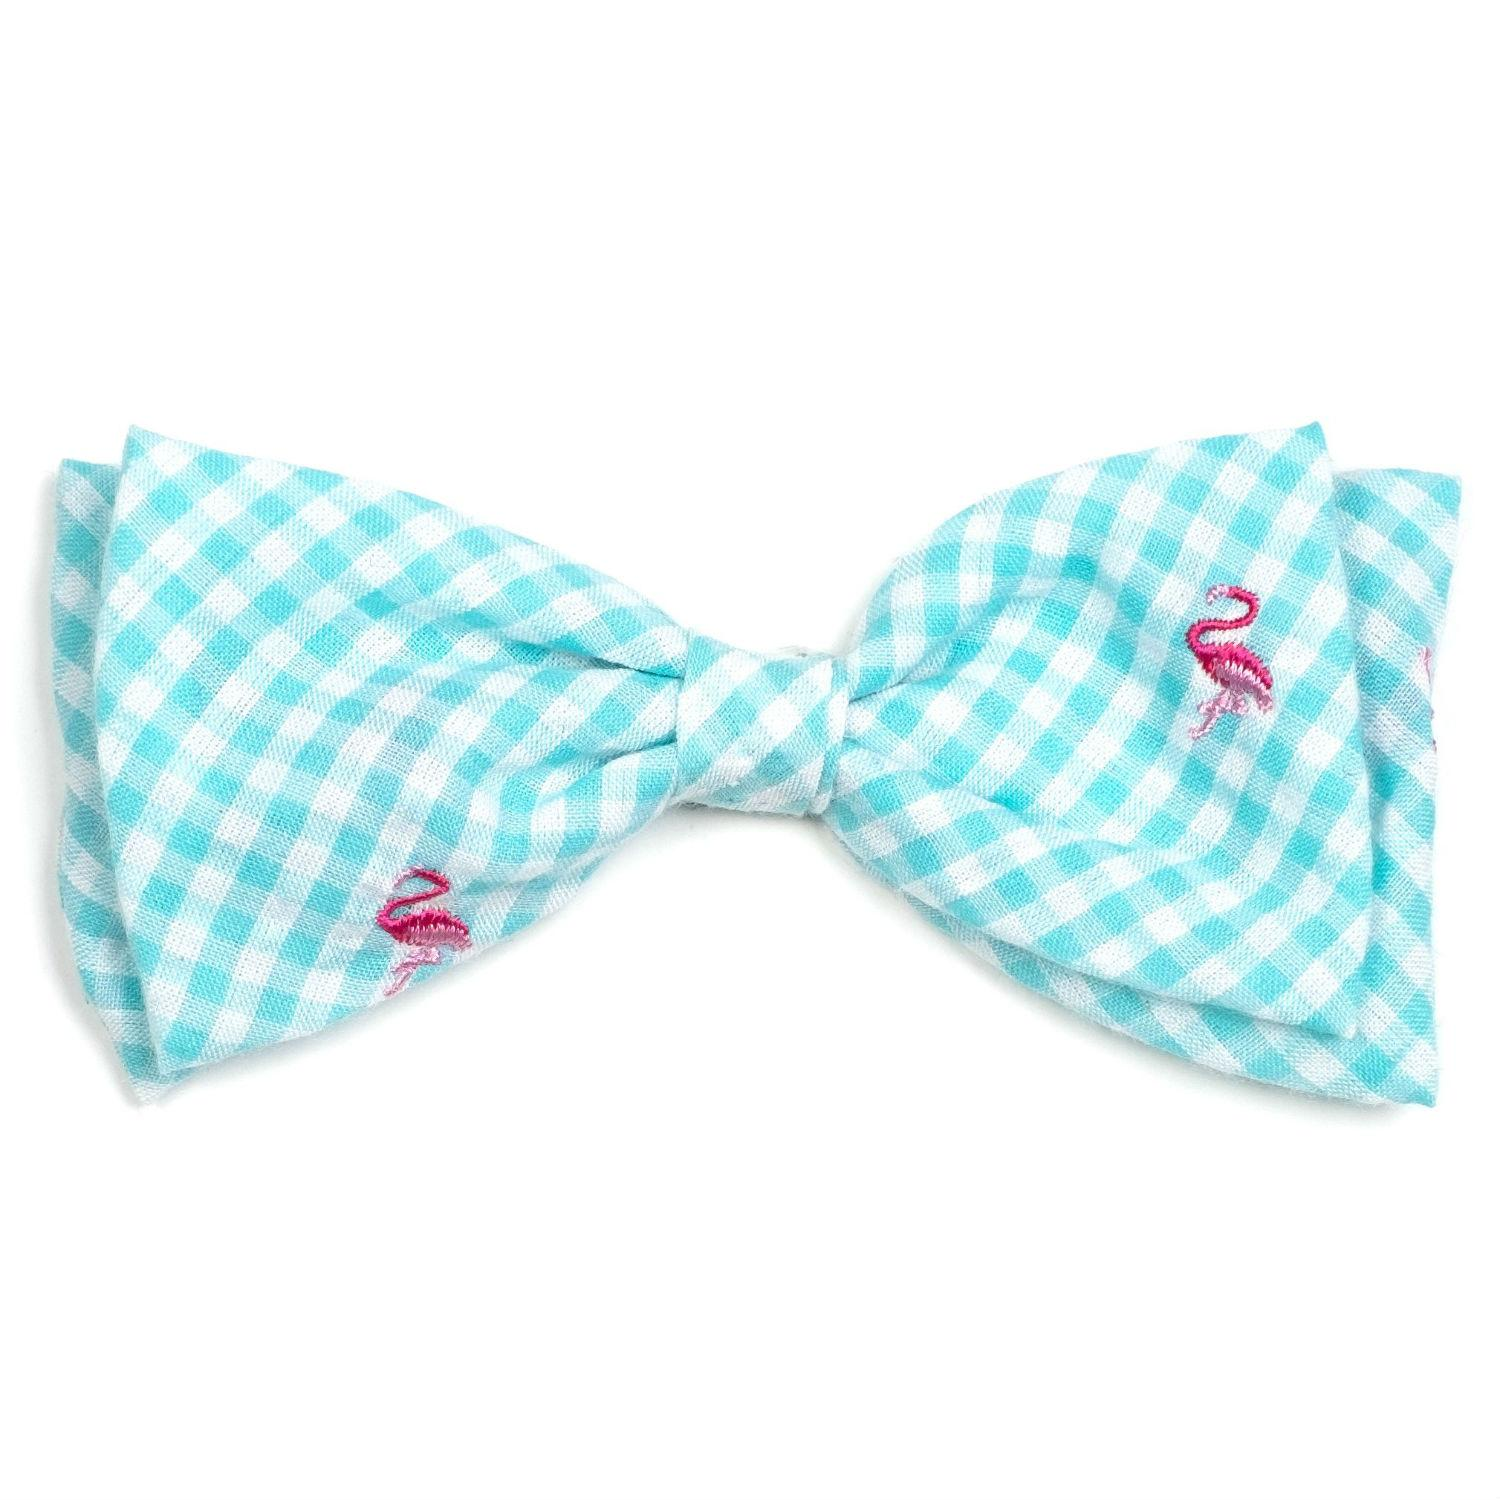 Worthy Dog Gingham Flamingos Dog and Cat Bow Tie Collar Attachment